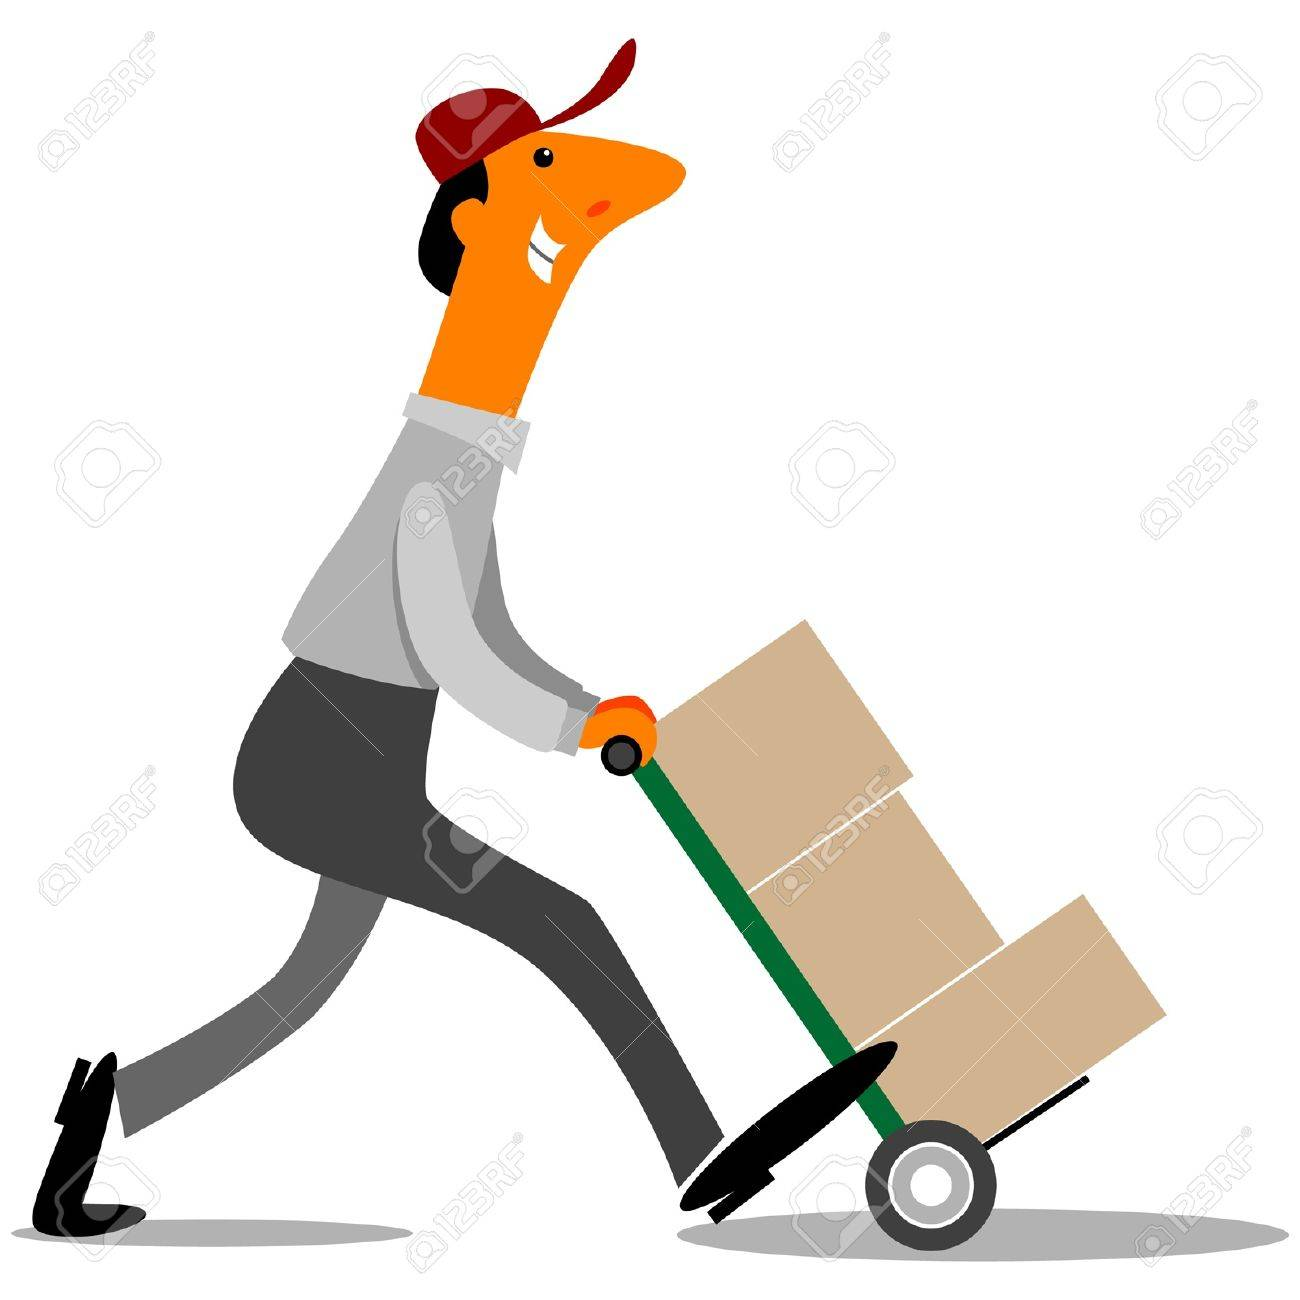 delivery driver delivering boxes royalty free cliparts, vectors, and